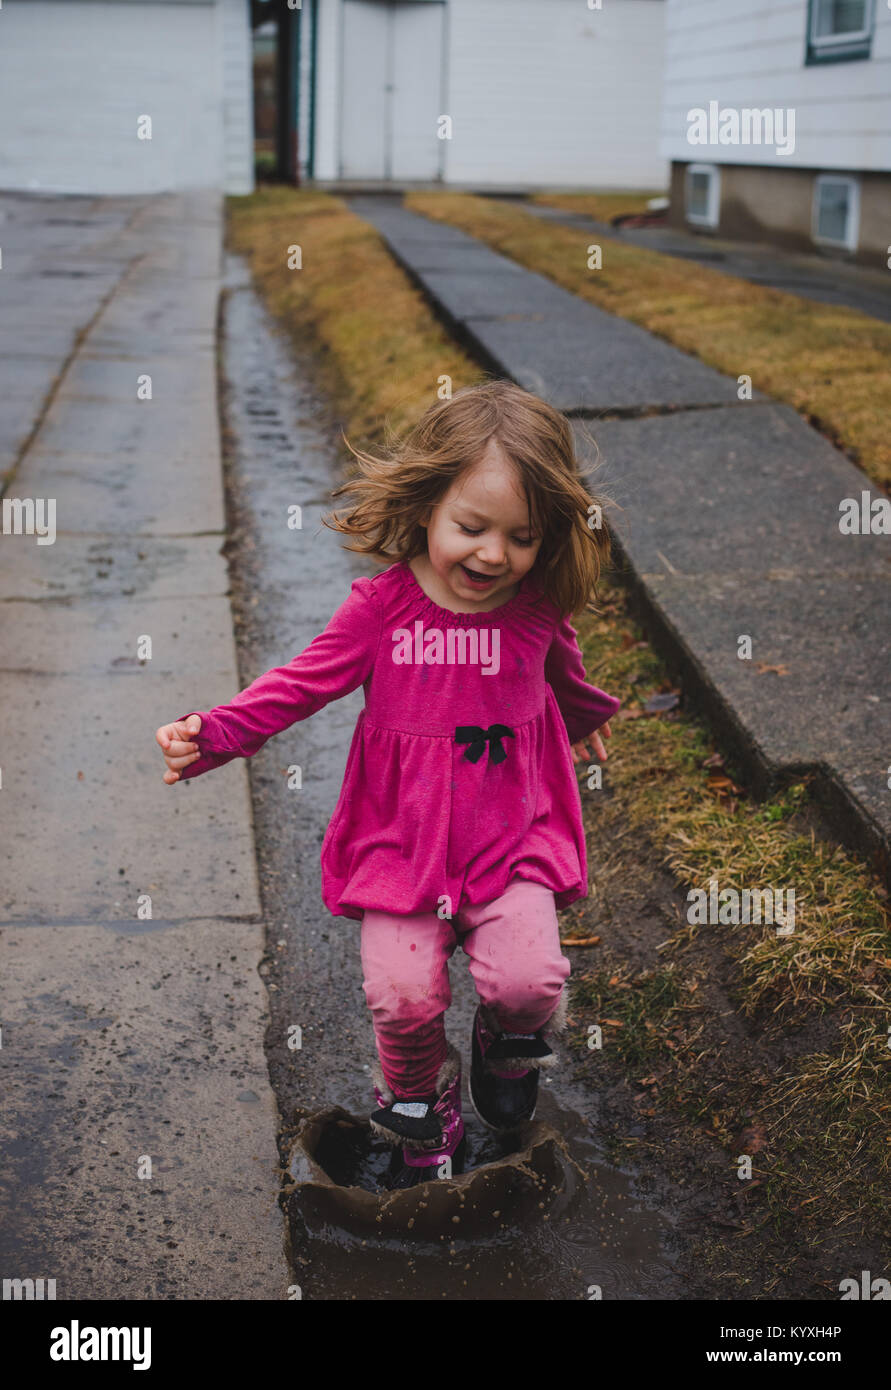 Toddler girl wearing pink, jumping in a mud puddle in a driveway on a rainy day. - Stock Image